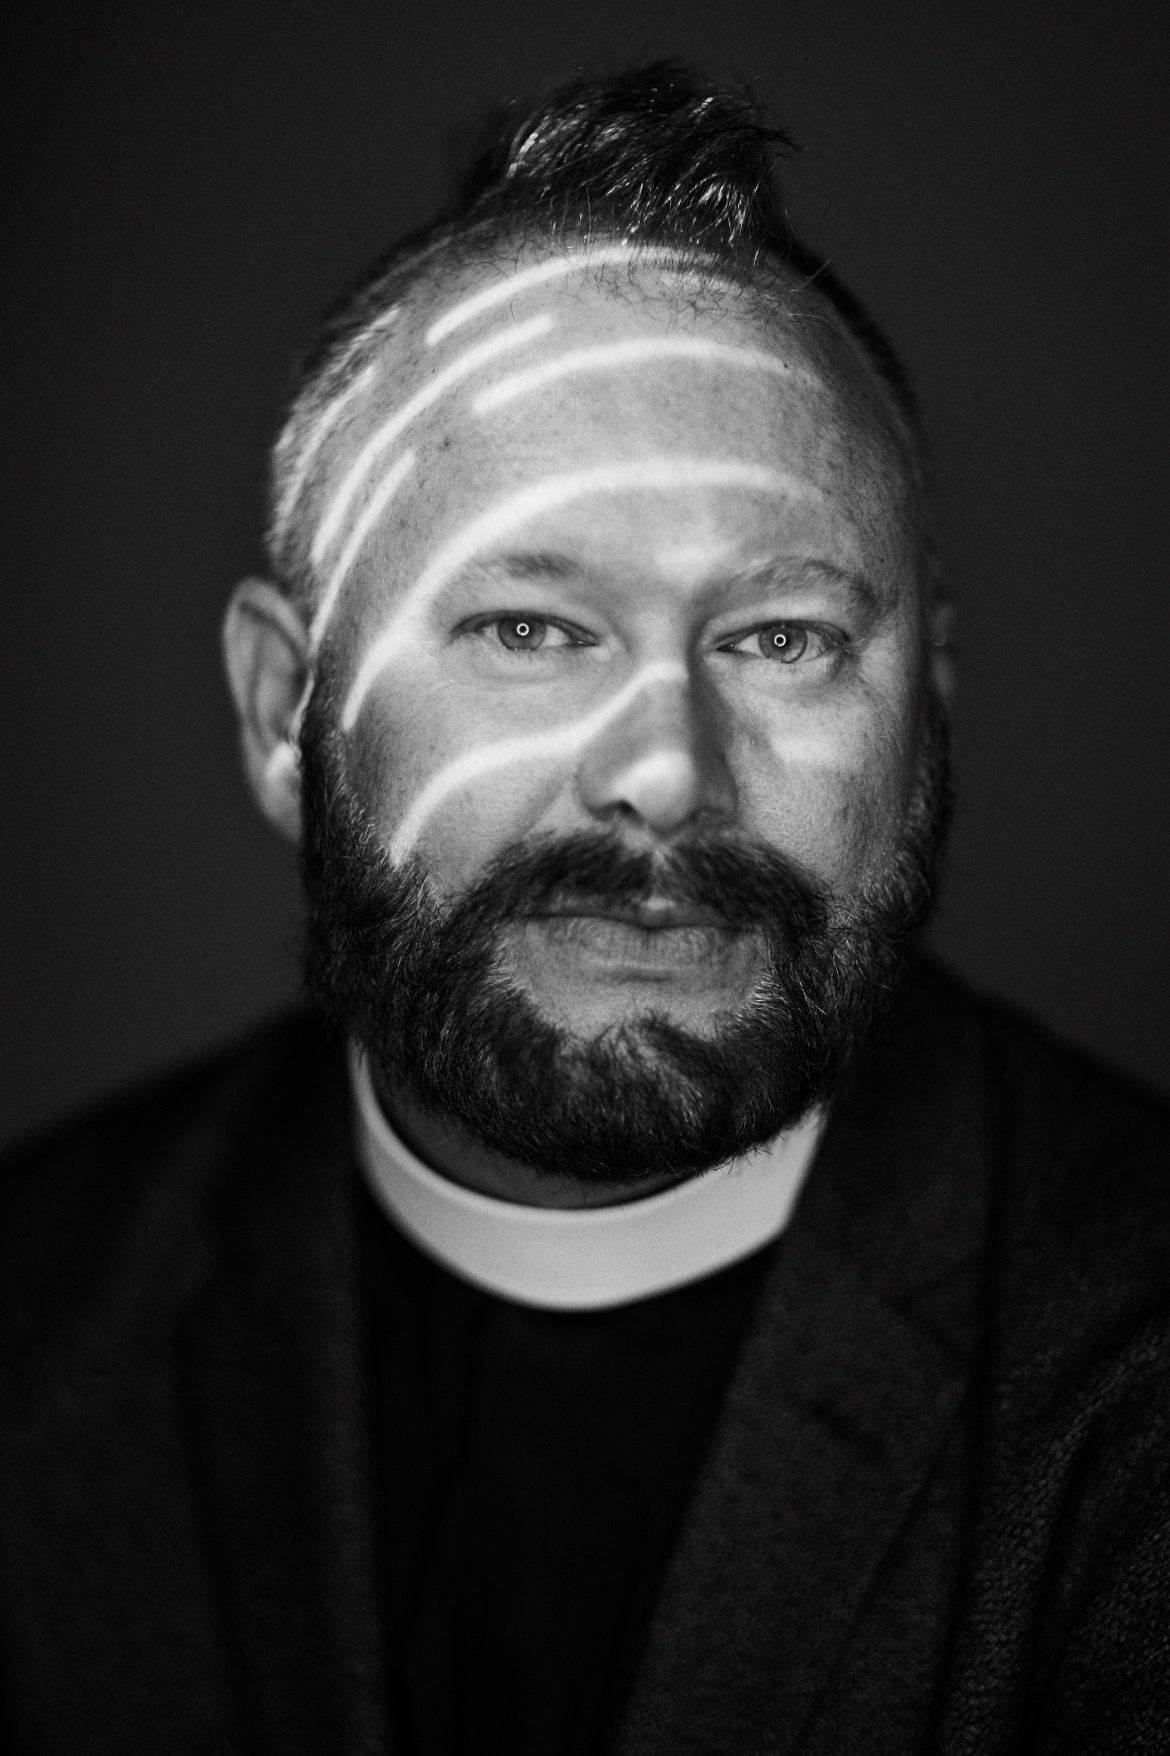 About - Find out about Fr. Chad